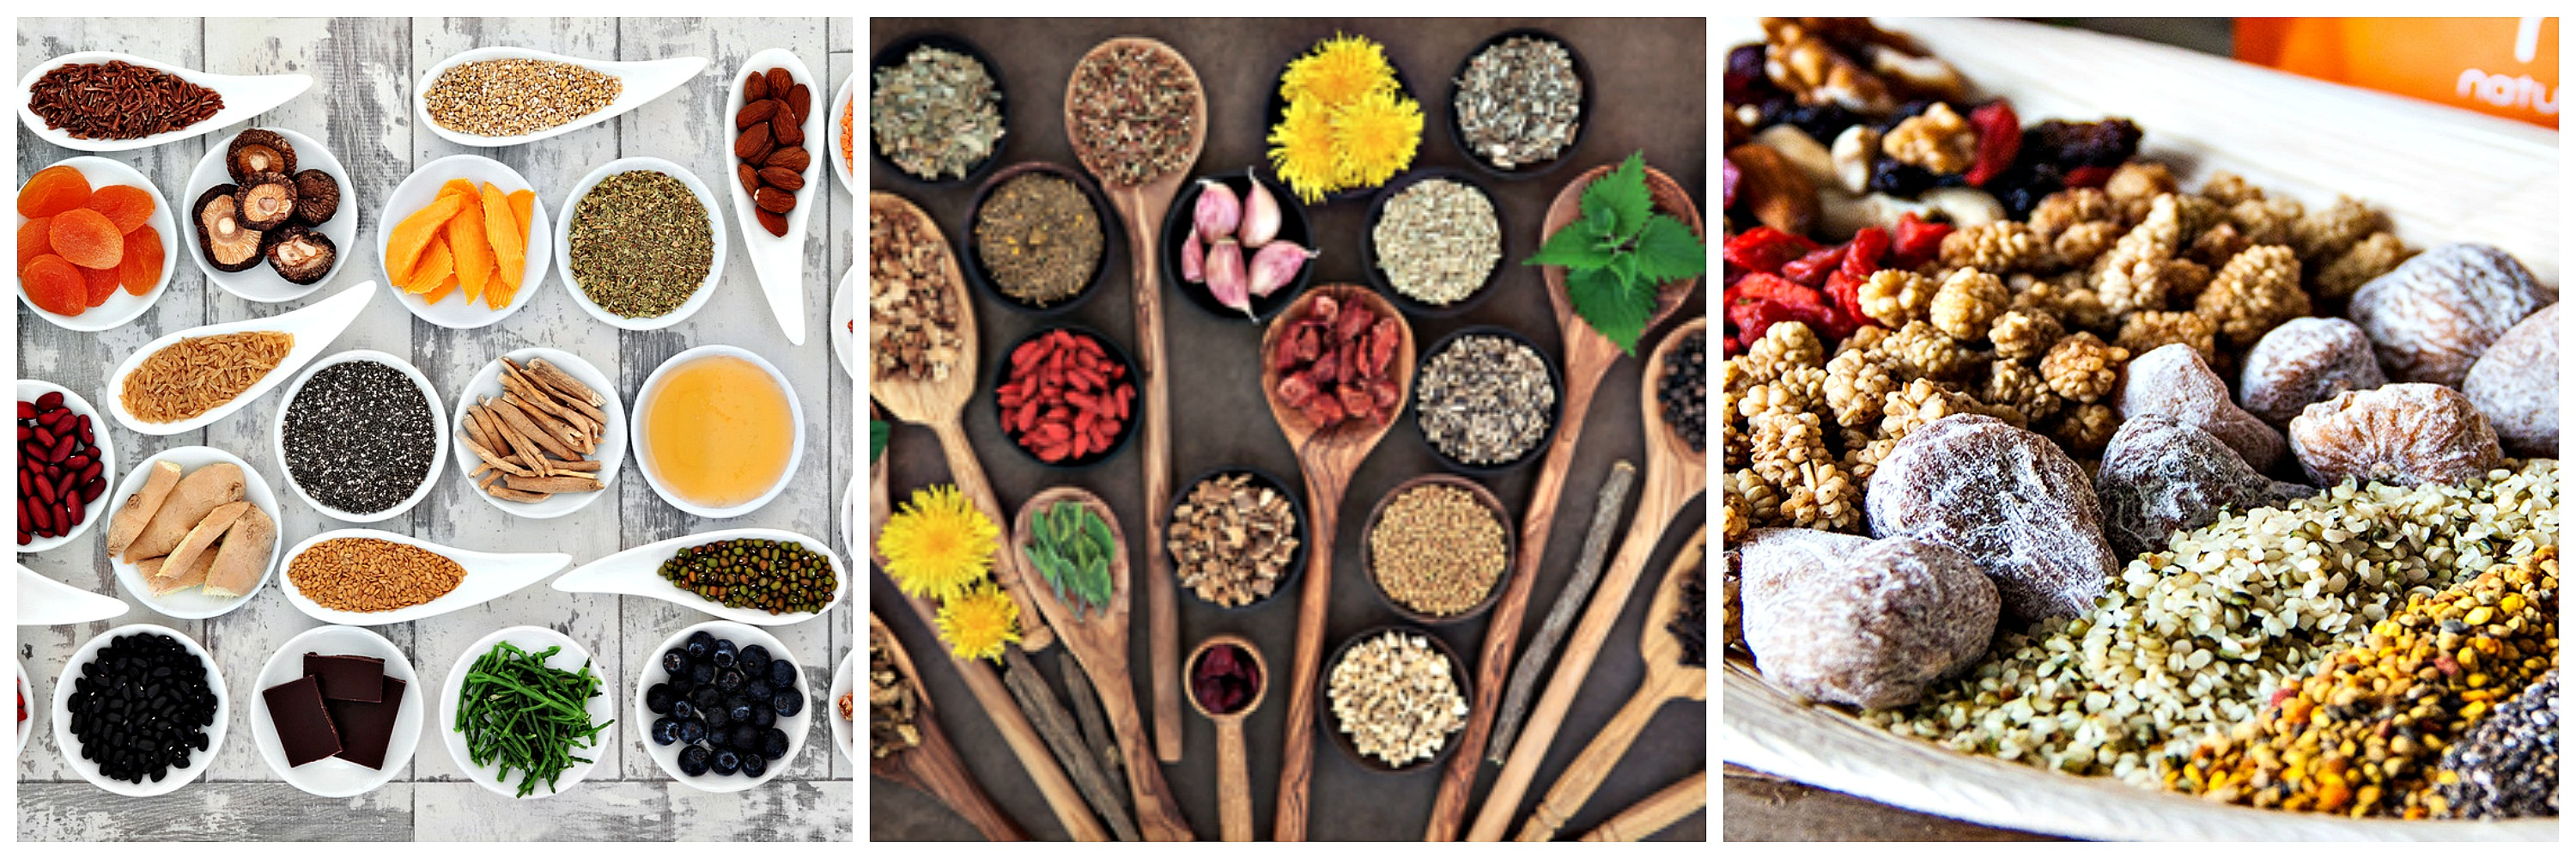 Selection of Superfoods